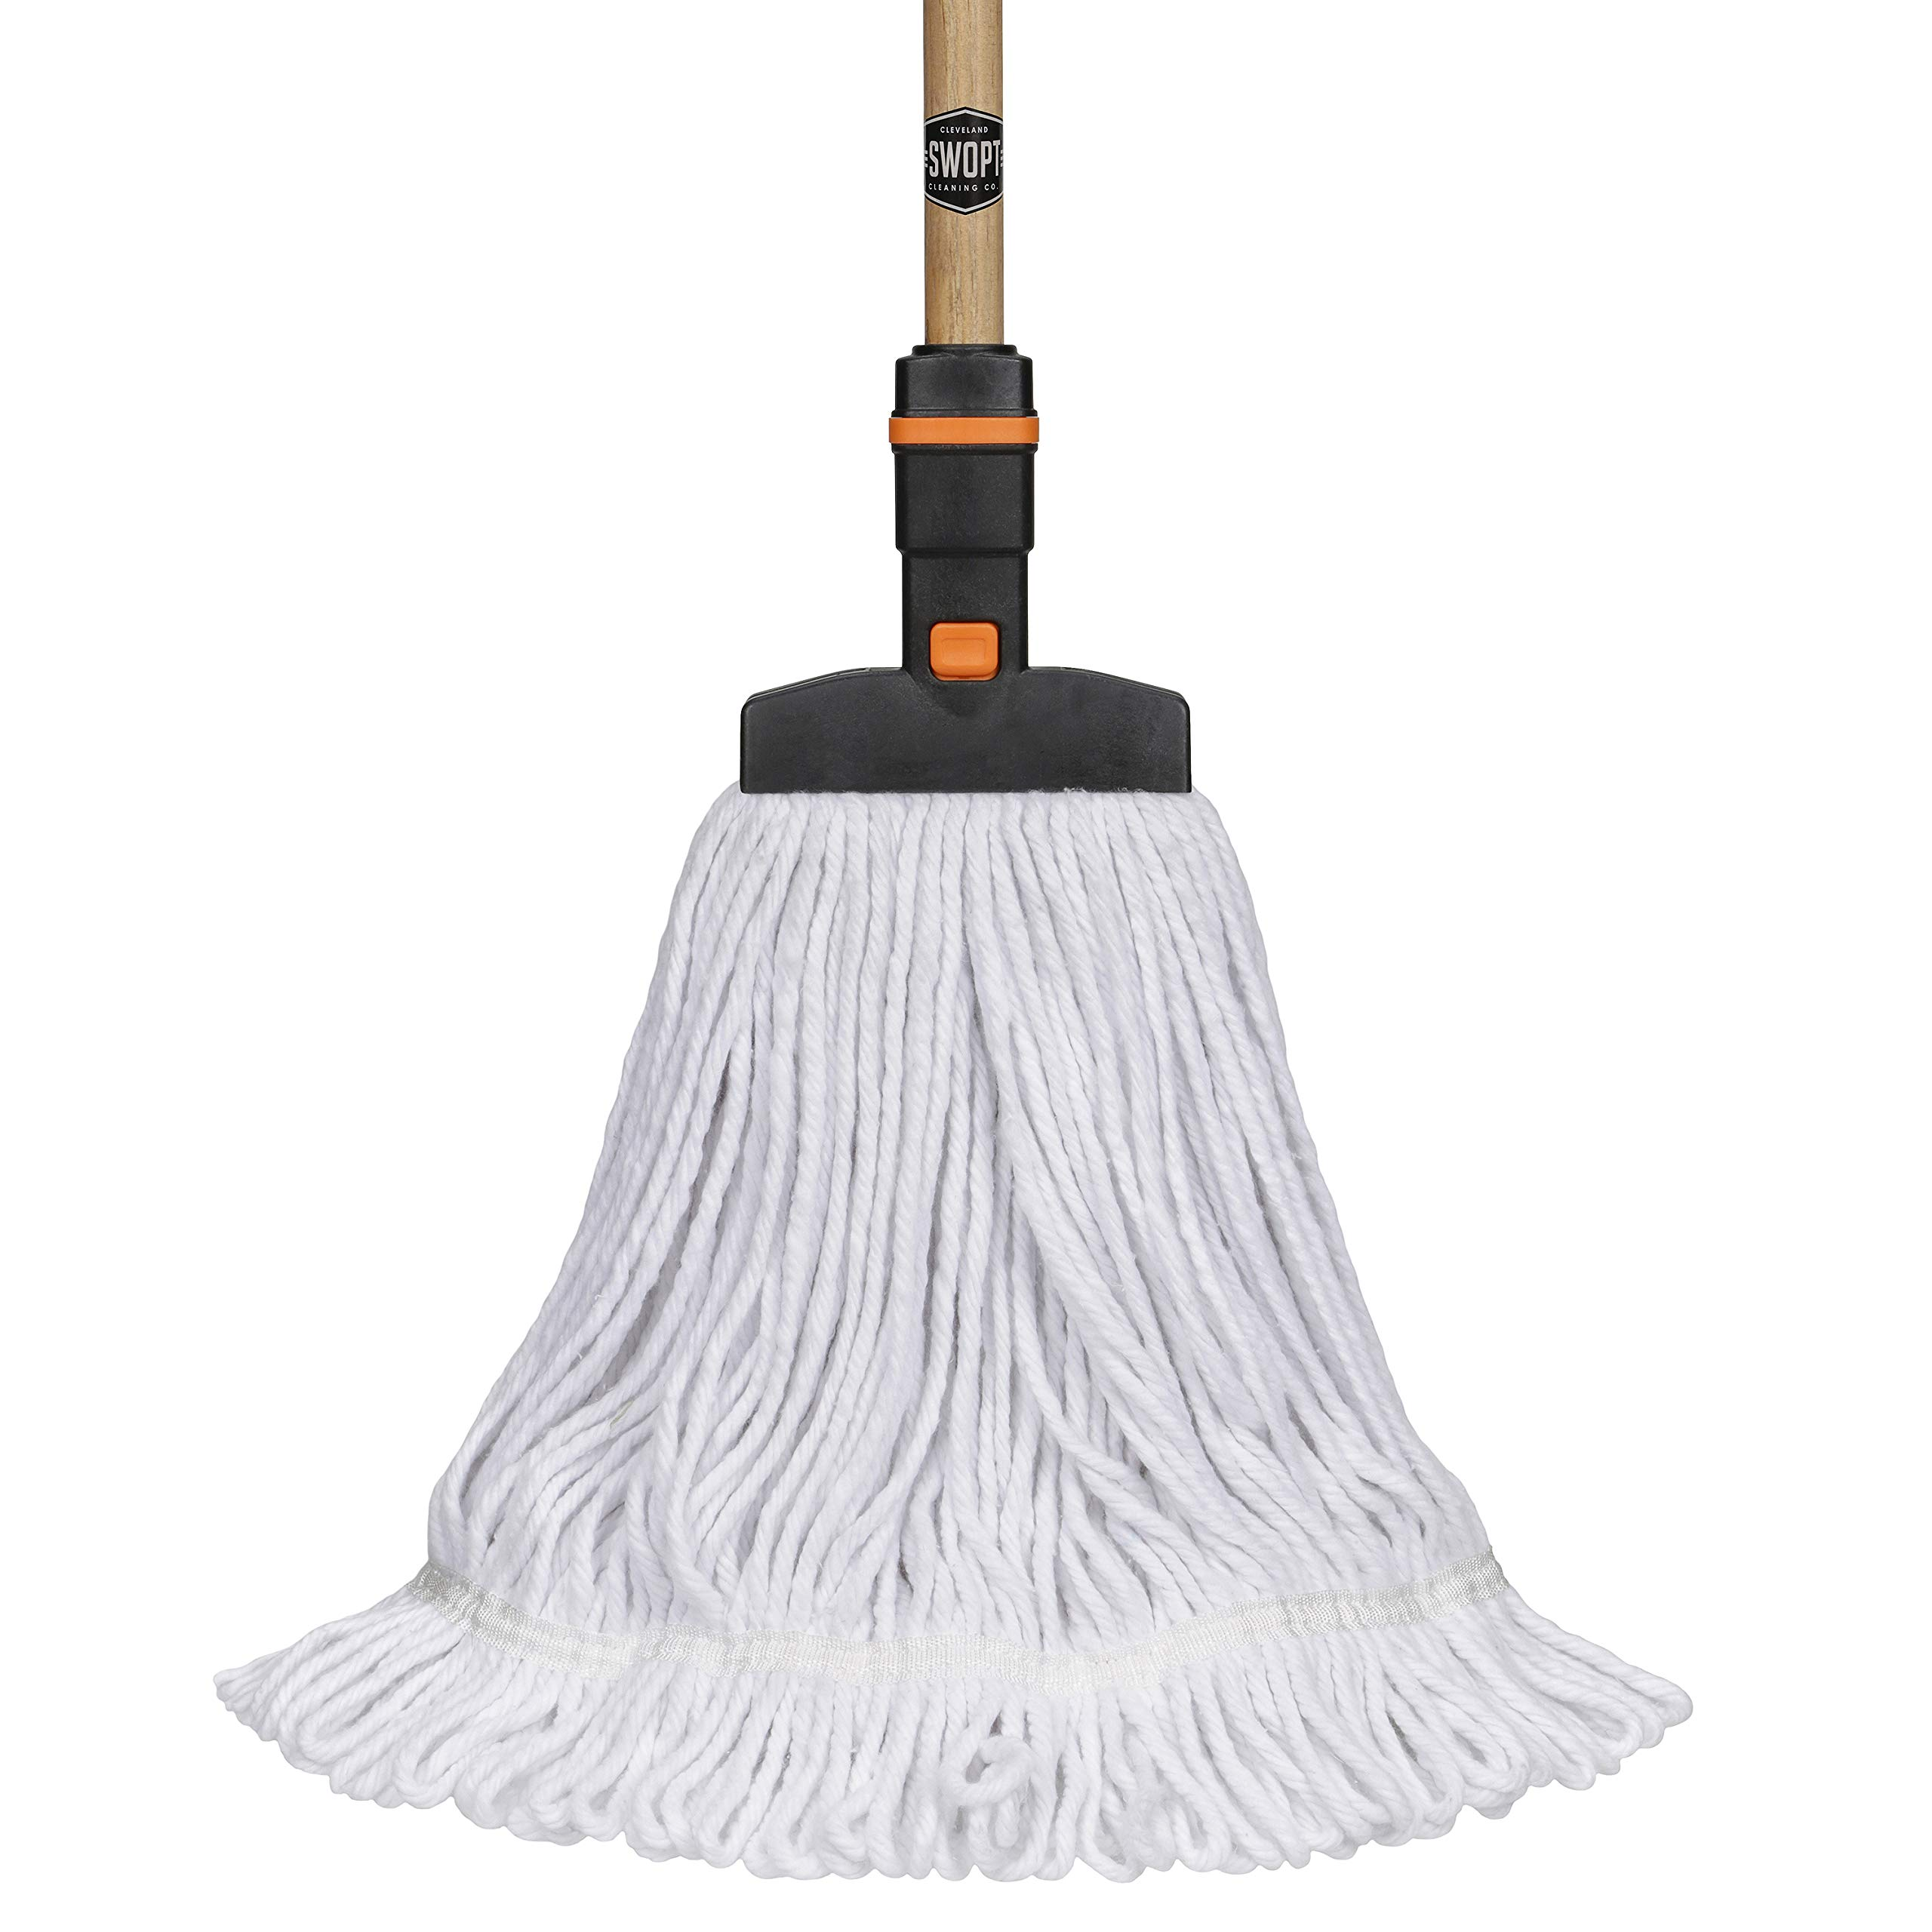 SWOPT Cotton Mop -60'' Premium Wood Handle -EVA Foam Comfort Grip Provides Comfort, Control, Efficiency -Mop Safe for Wood, Laminate or Tile -Handle Interchangeable with Other SWOPT Products by Swopt